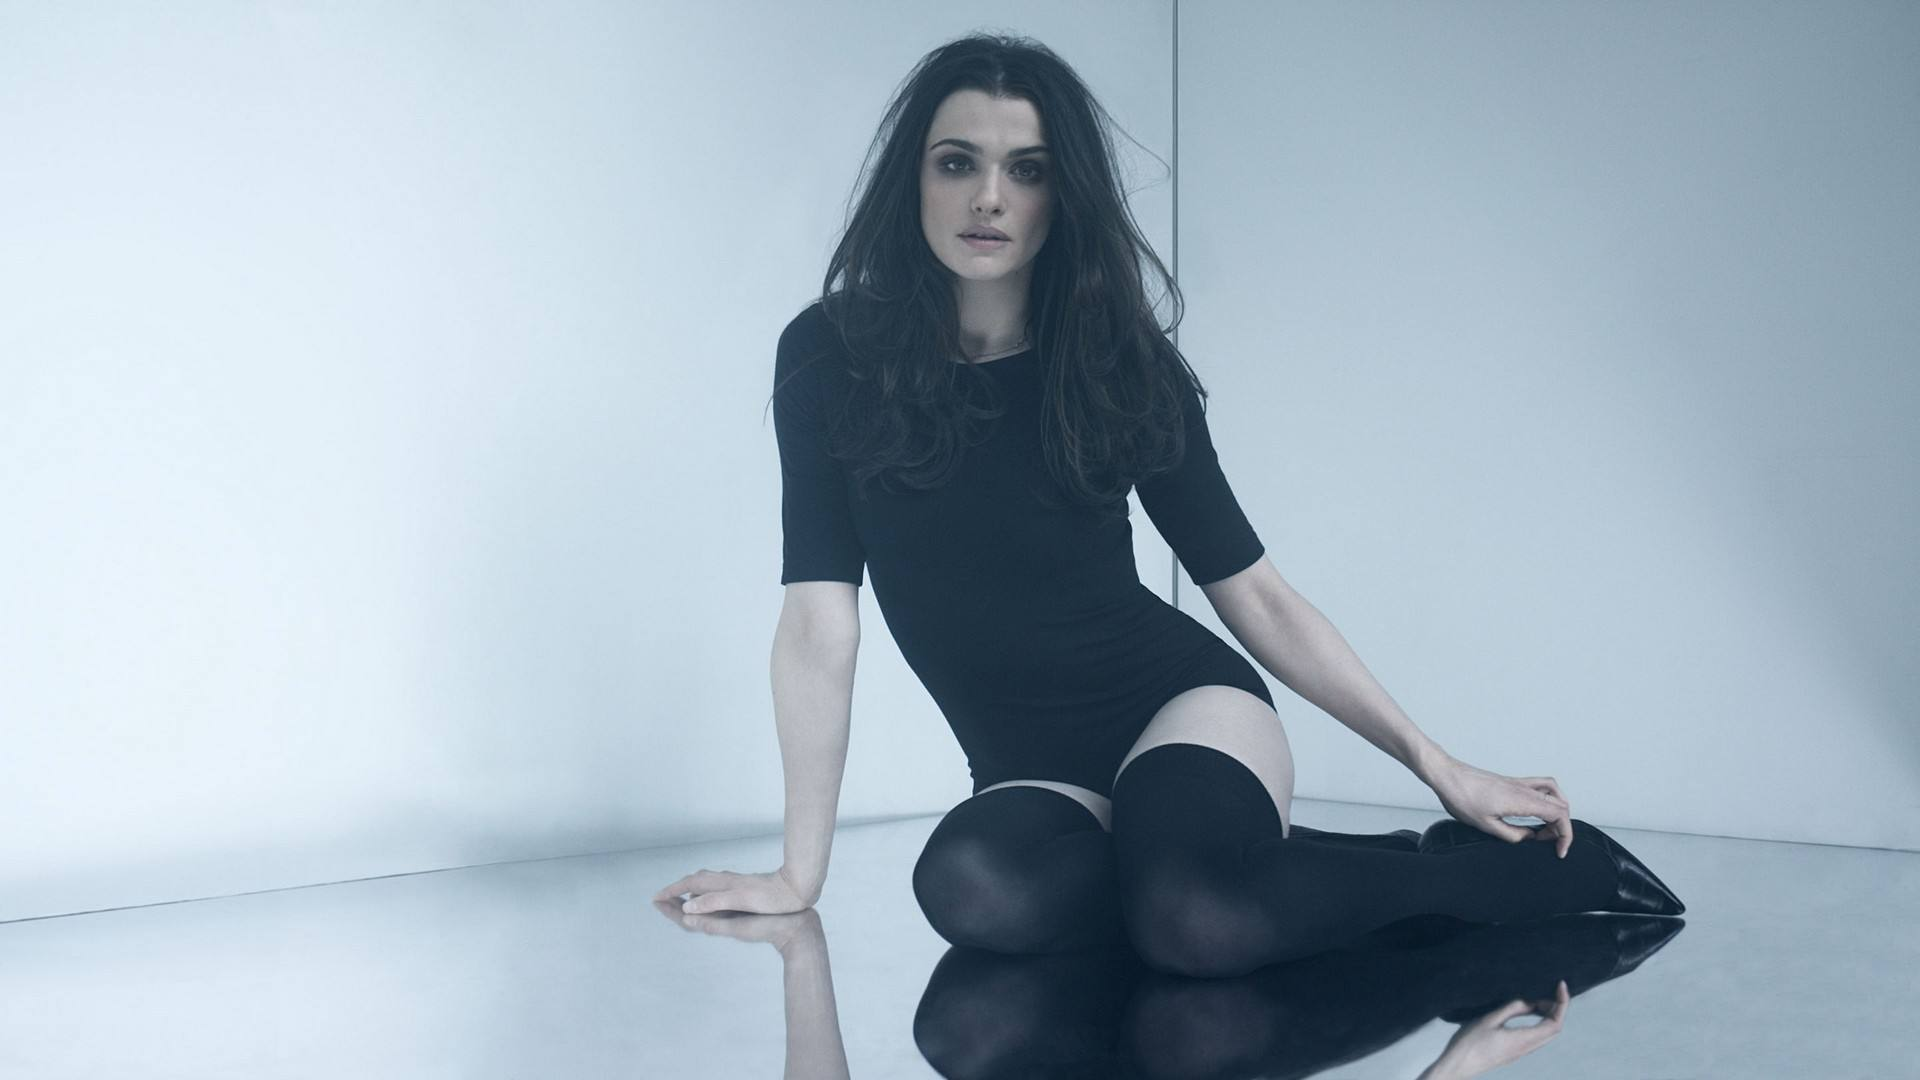 rachel weisz knee high socks wallpaper 66782